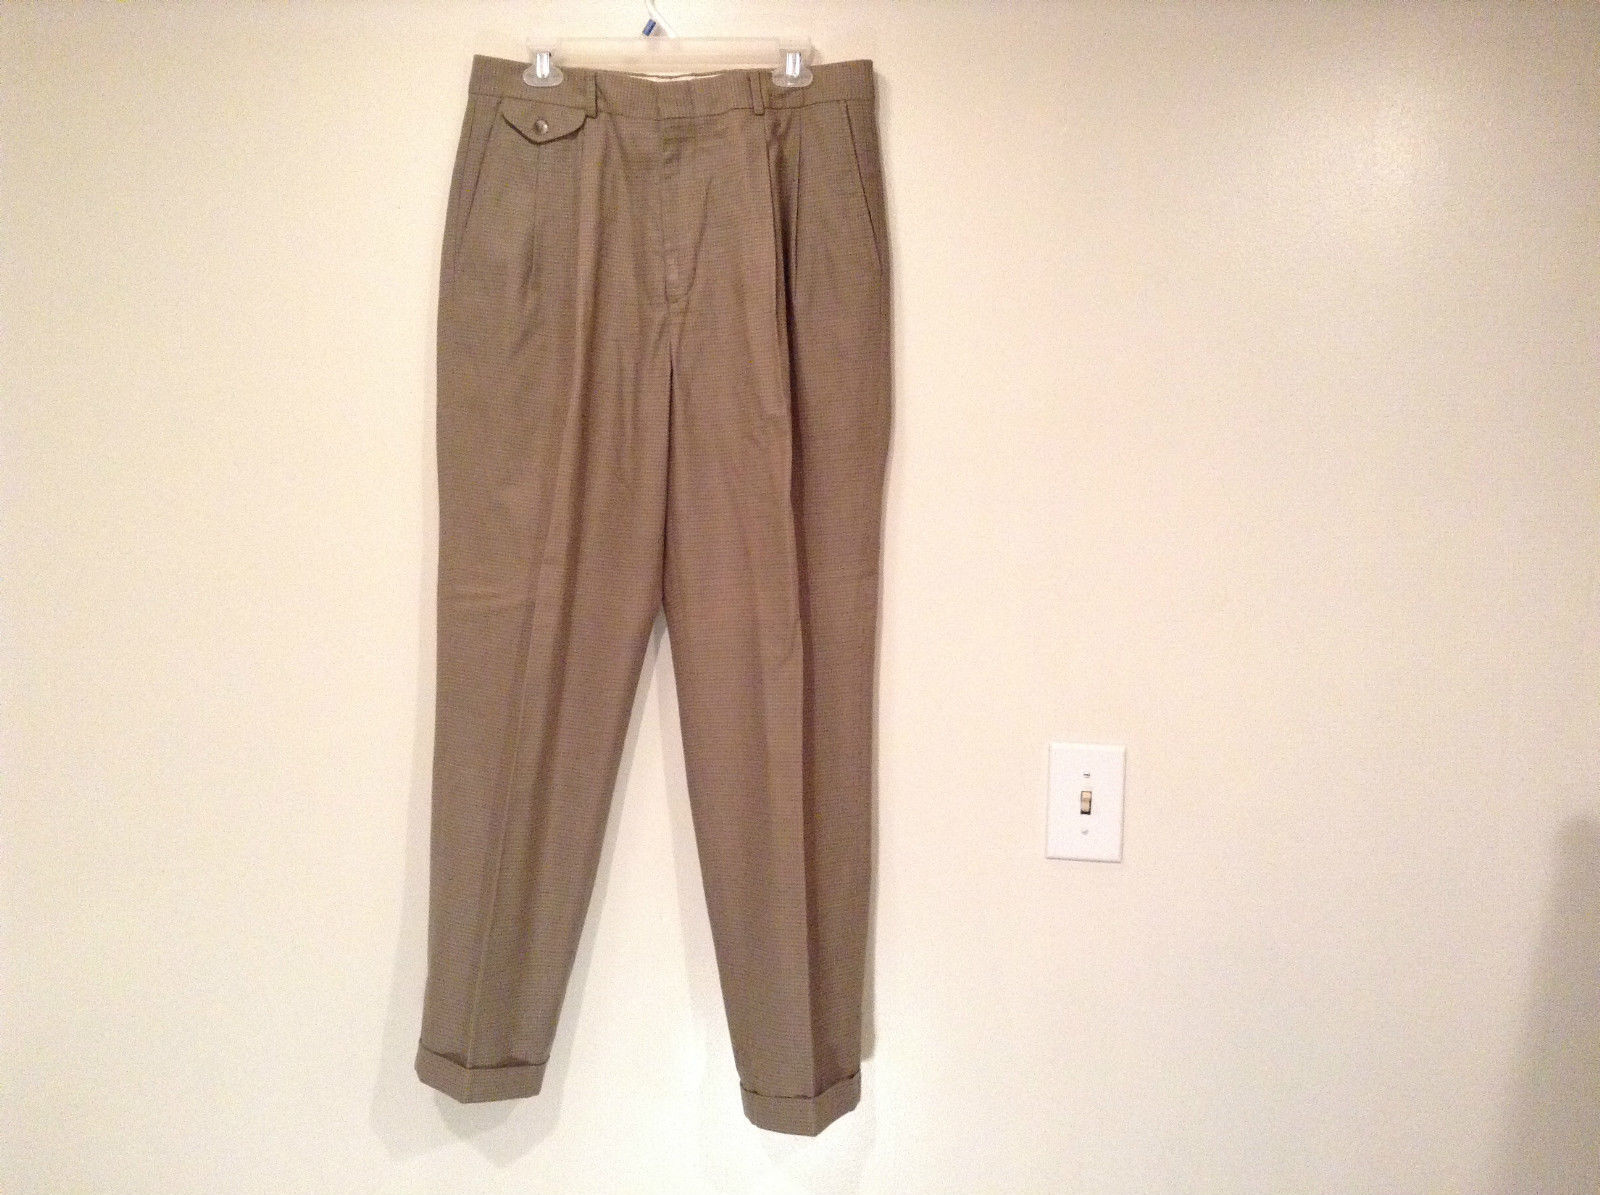 Eddie Bauer Light Brown 100 Percent Cotton Pleated Front Dress Pants Size 33W